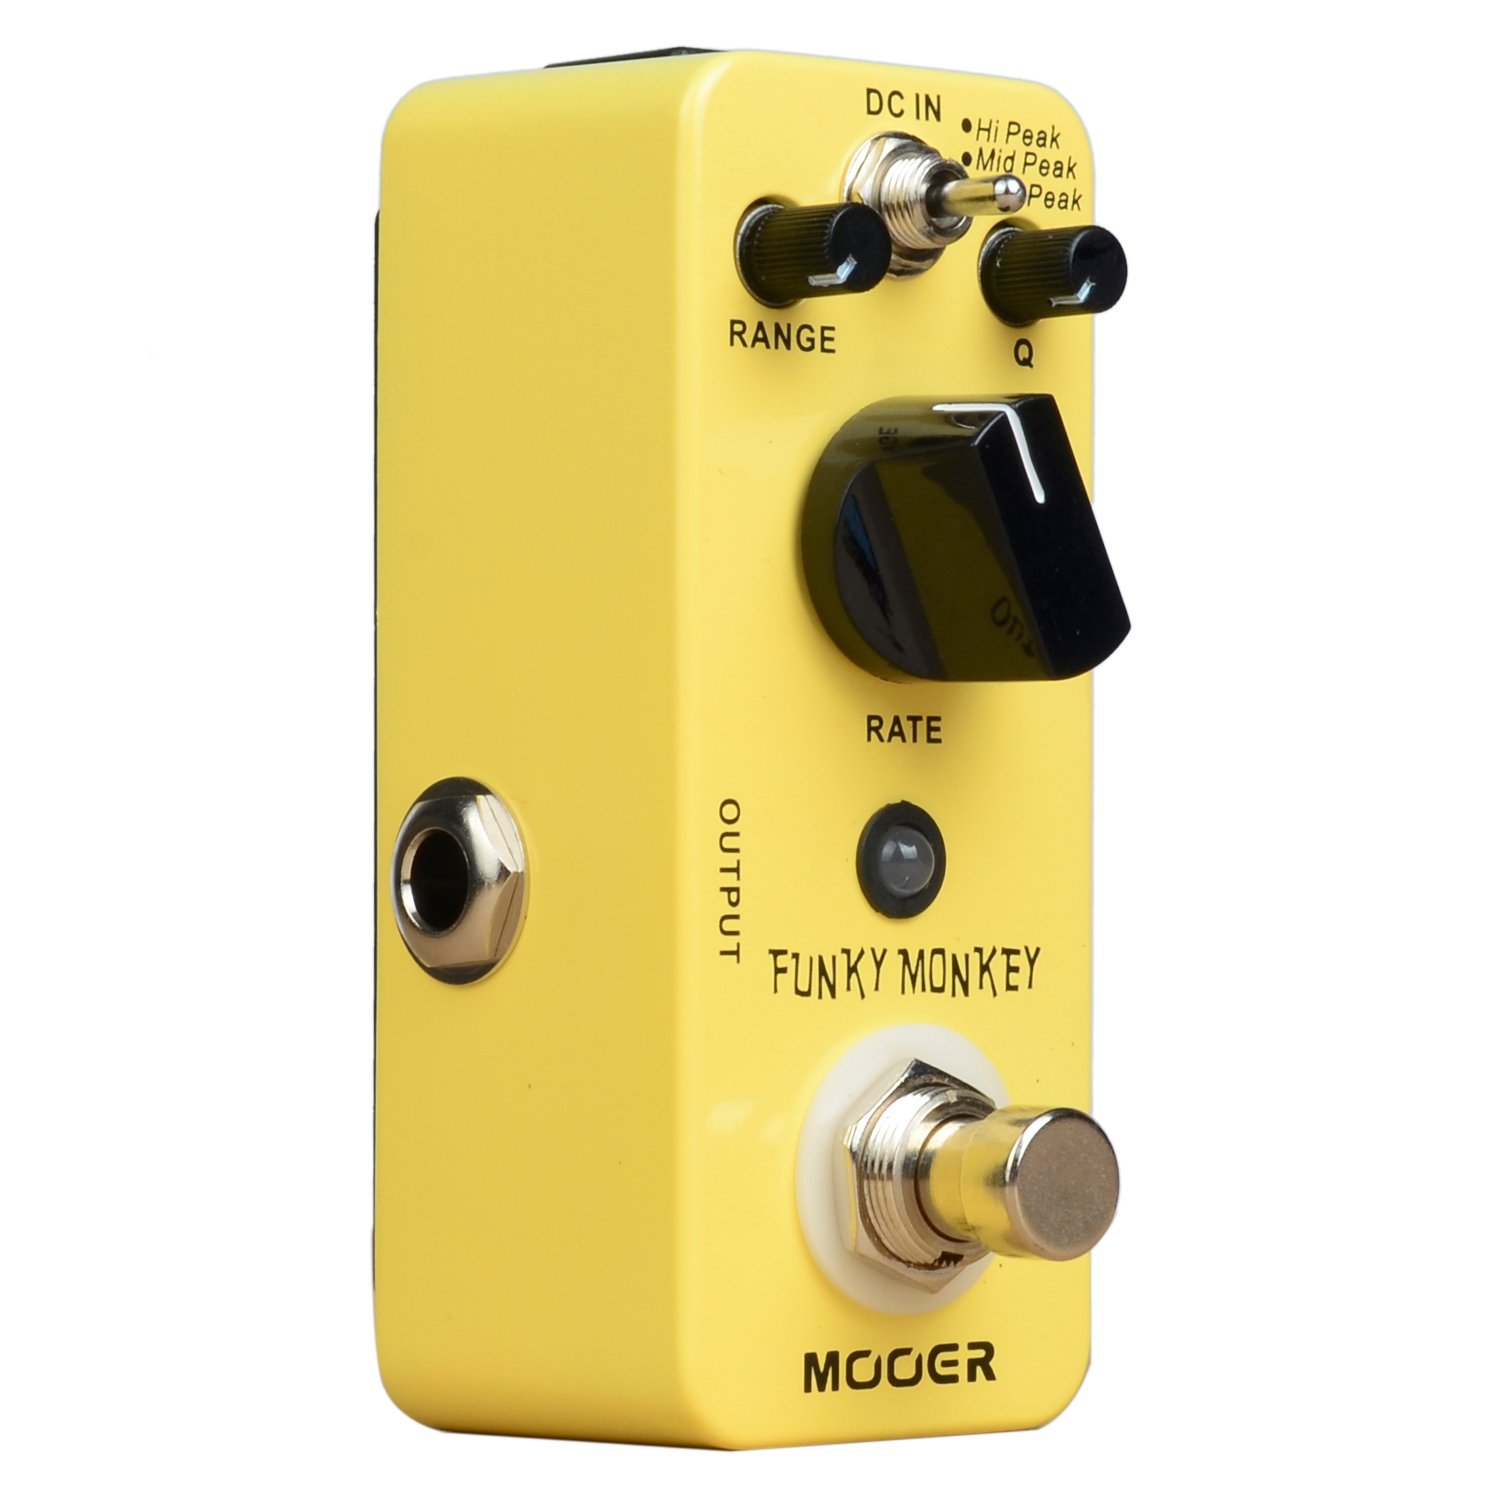 MOOER Funky Monkey Auto Wah Electirc Guitar Effect Pedal Mini Effects True Bypass valeton katfish guitar effect auto wah pedal highly accurate pristine tone true bypass caw 1